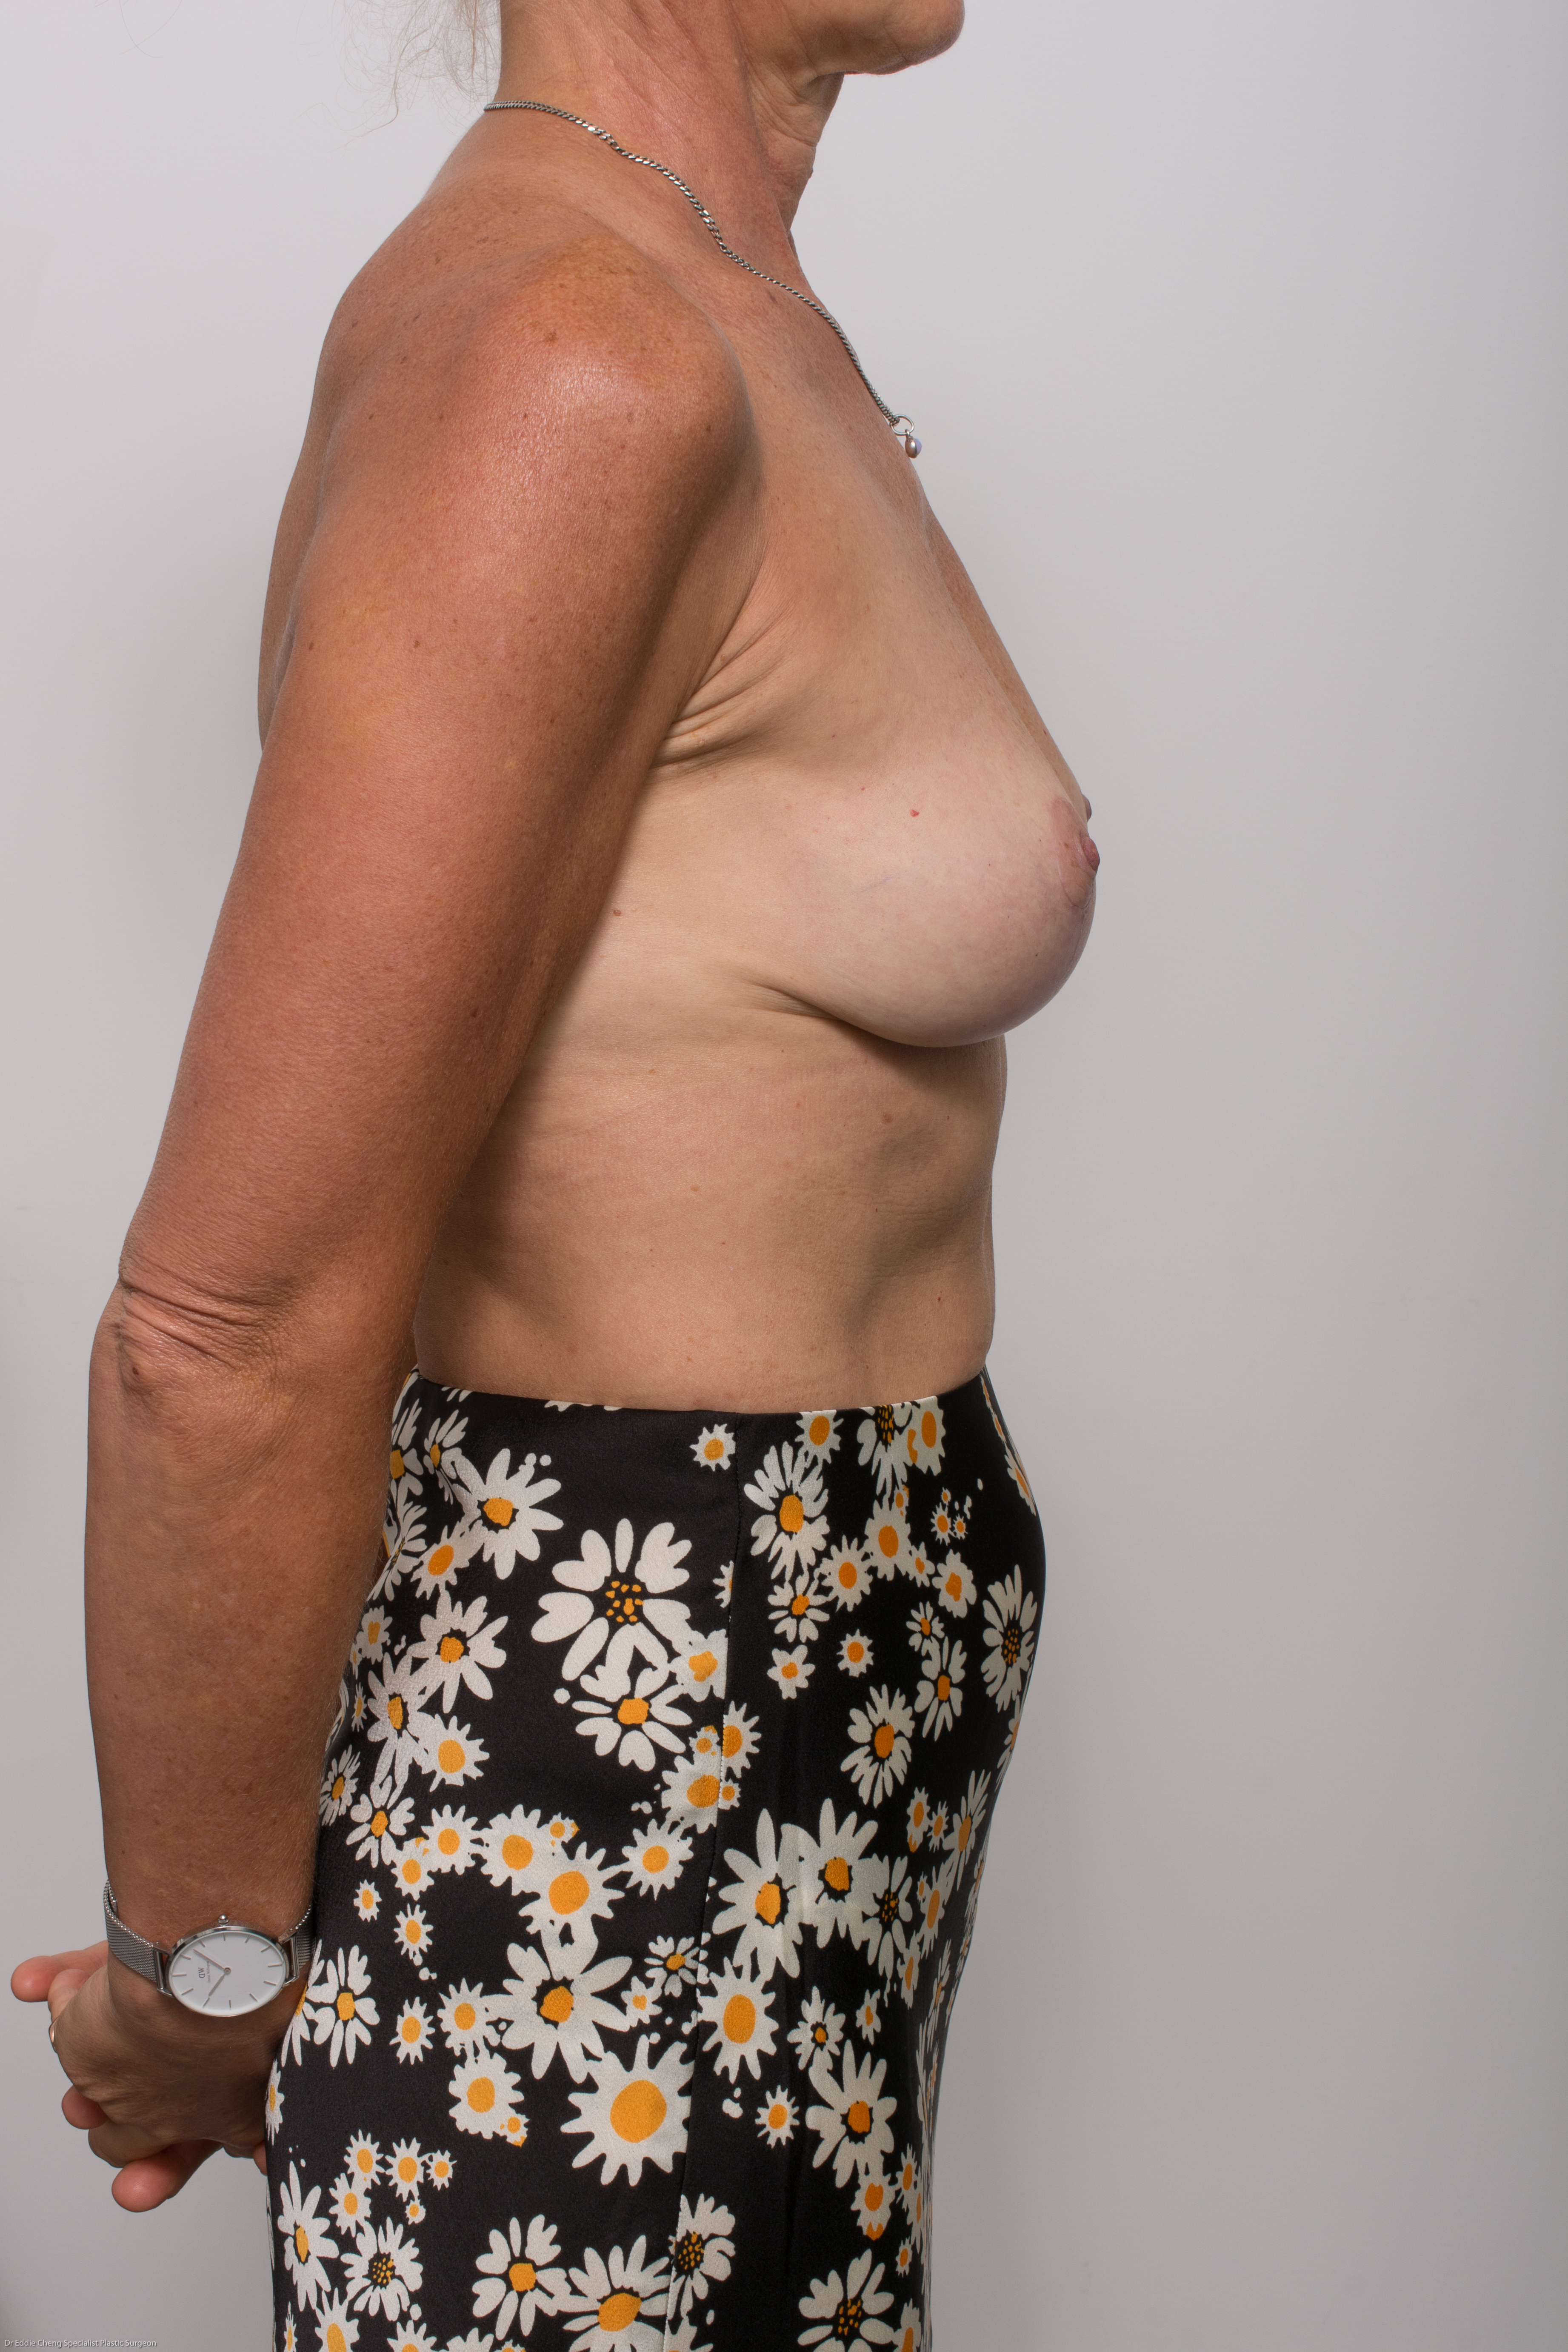 post op removal of breast implants and mastopexy (1 of 5)